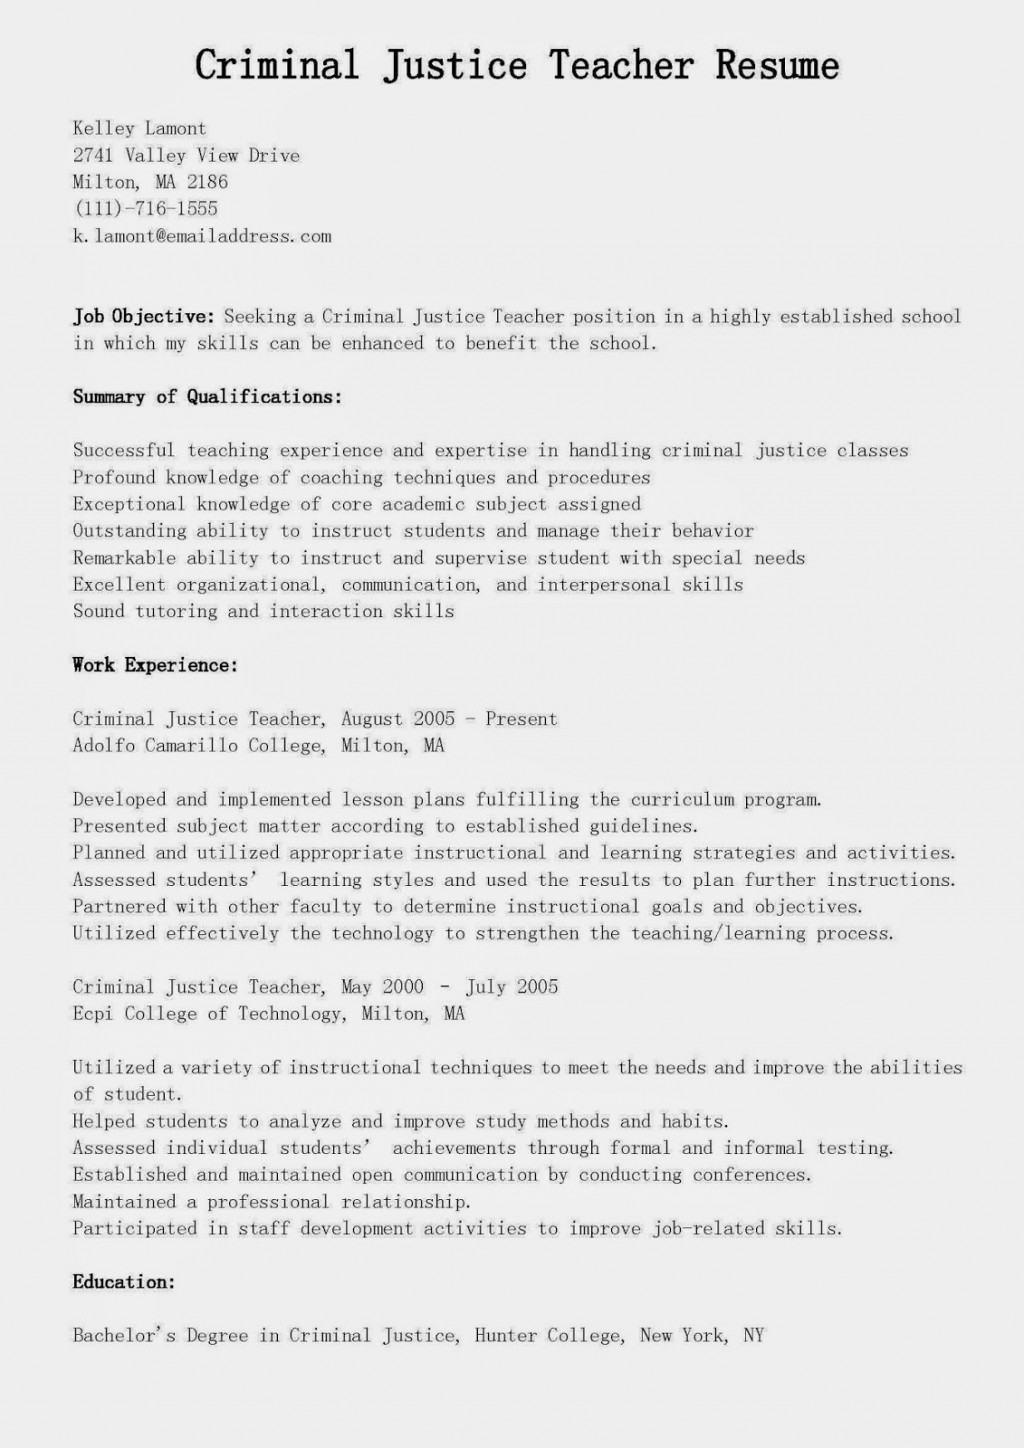 009 Criminaljusticeteacherresume Essay Example Fascinating Justice To Kill A Mockingbird And Injustice Criminal Scholarship Examples Introduction Large